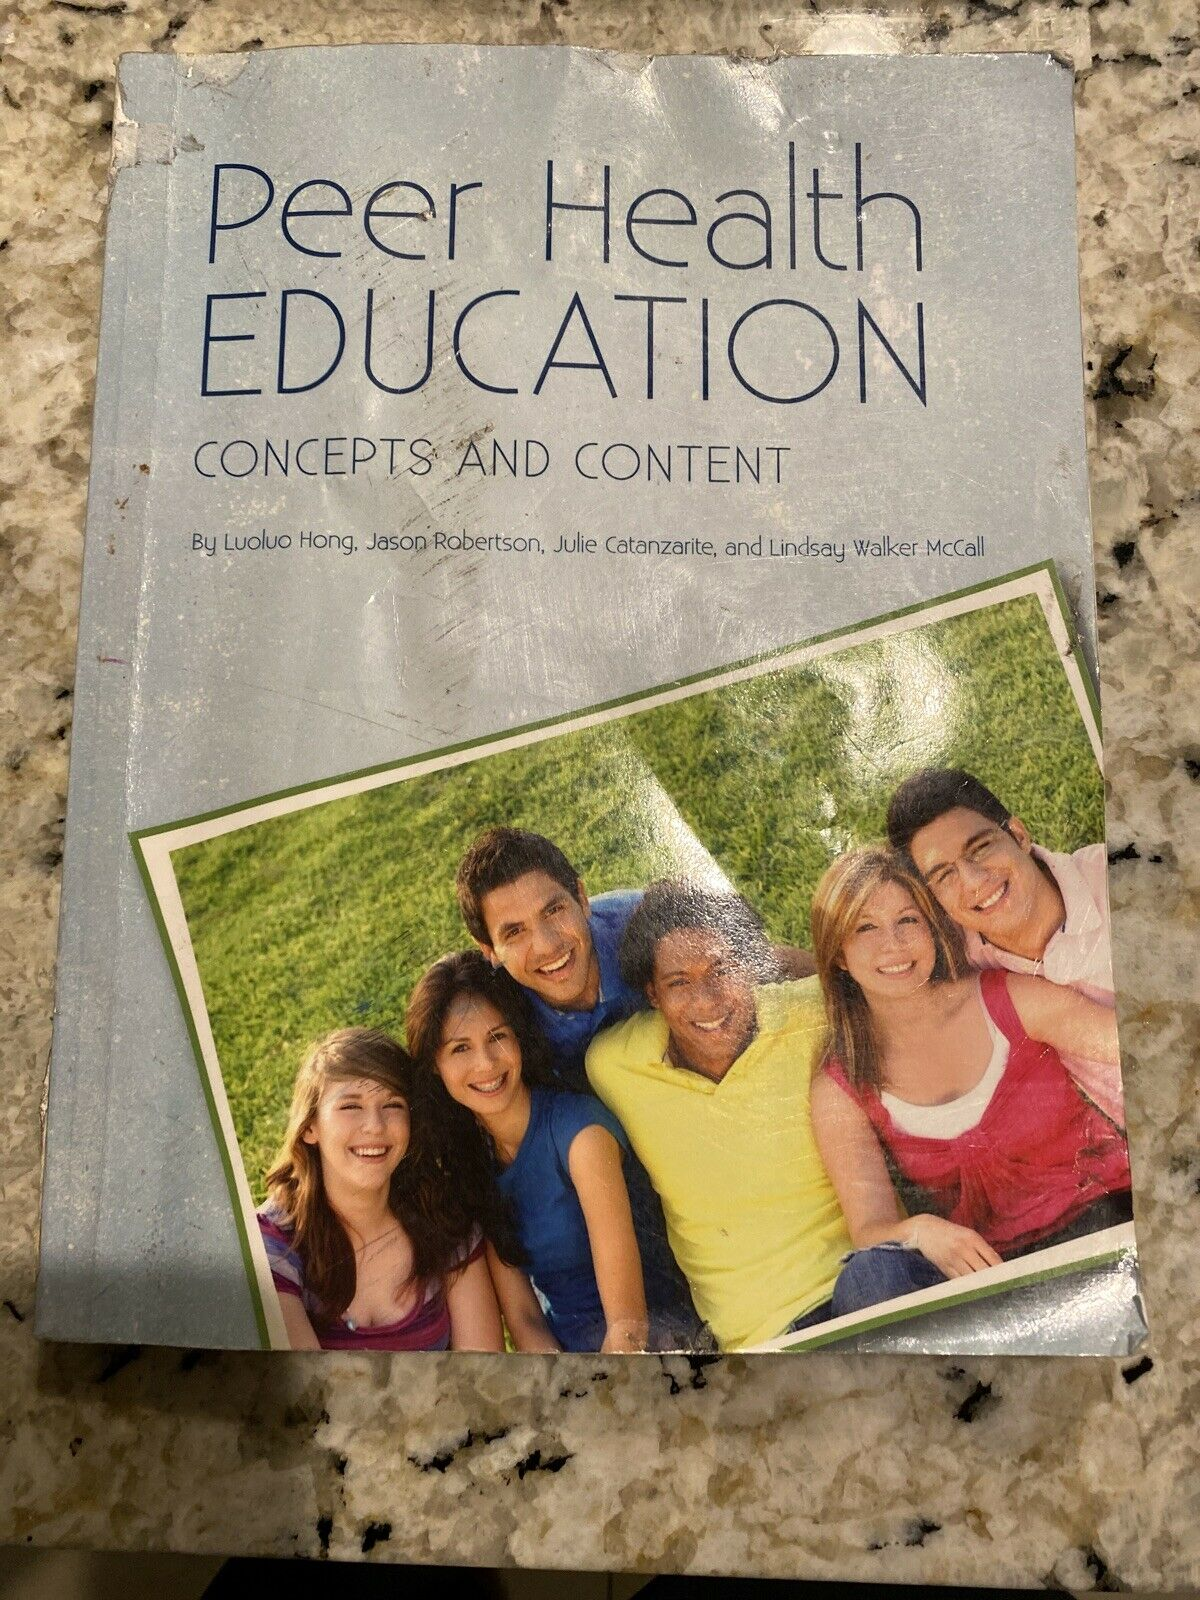 PEER HEALTH EDUCATION: CONCEPTS AND CONTENT By Julie Catanzarite Good Condition